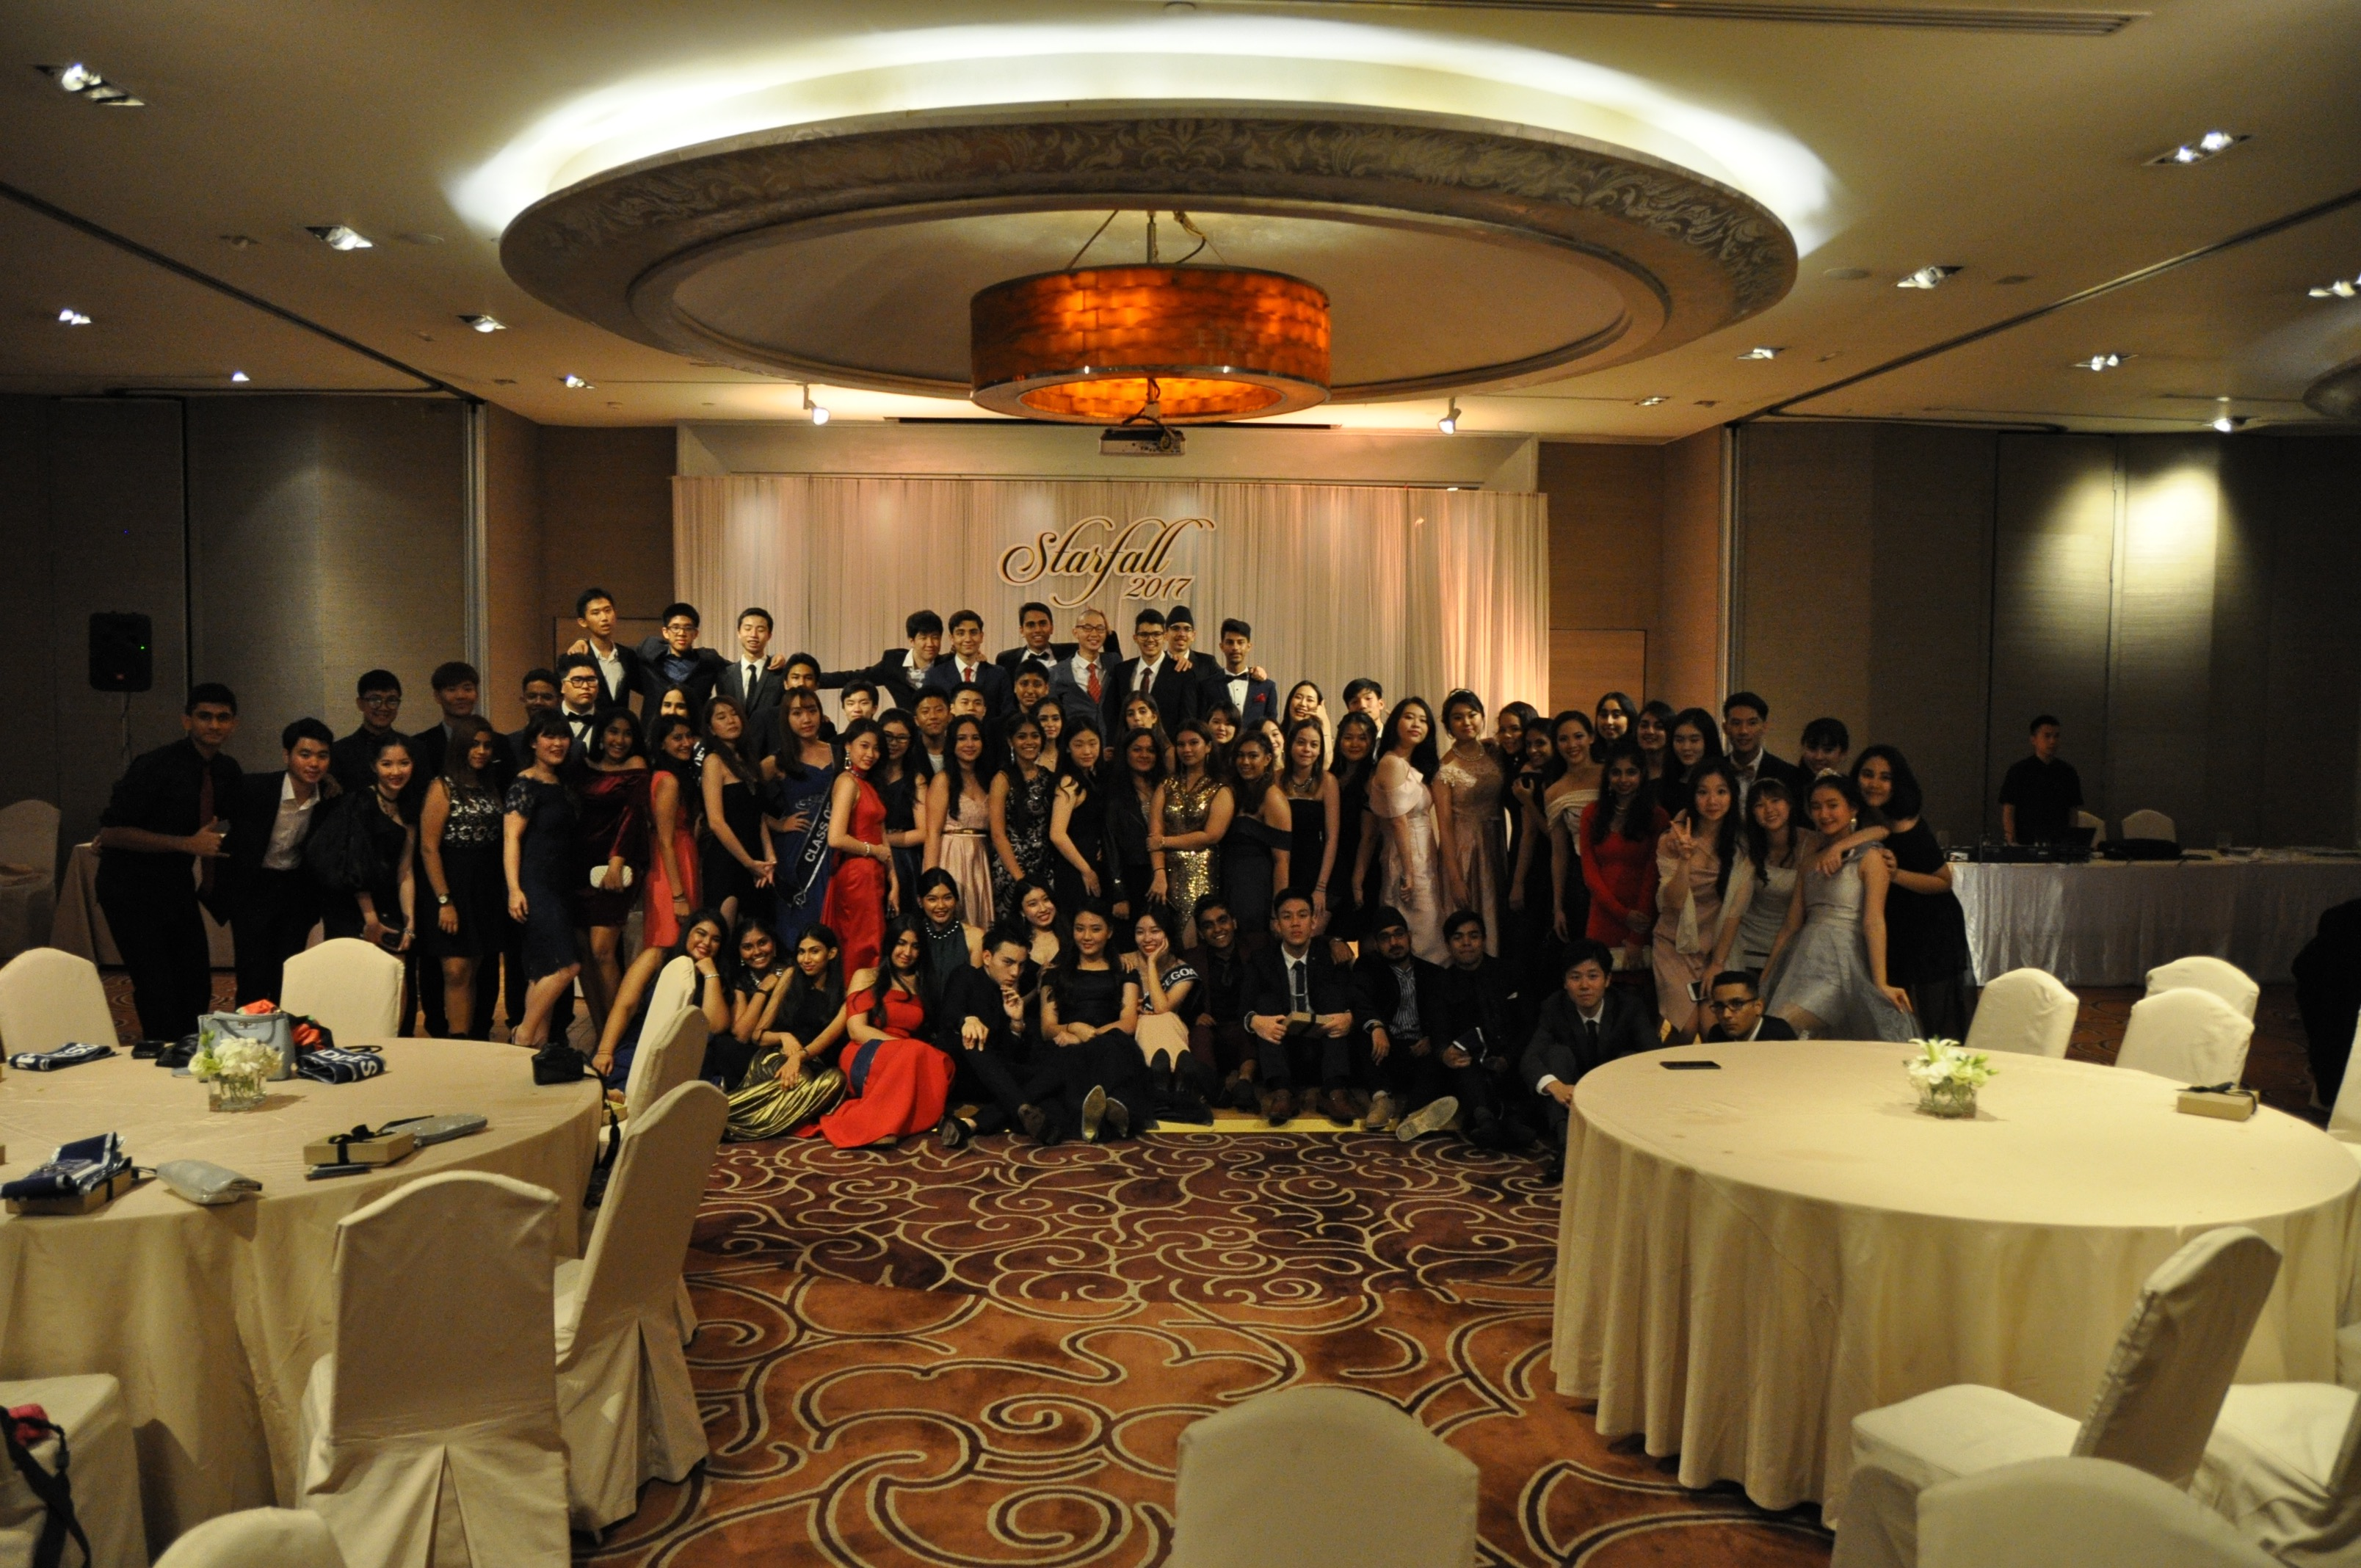 Starfall - Prom 2017 picture 1